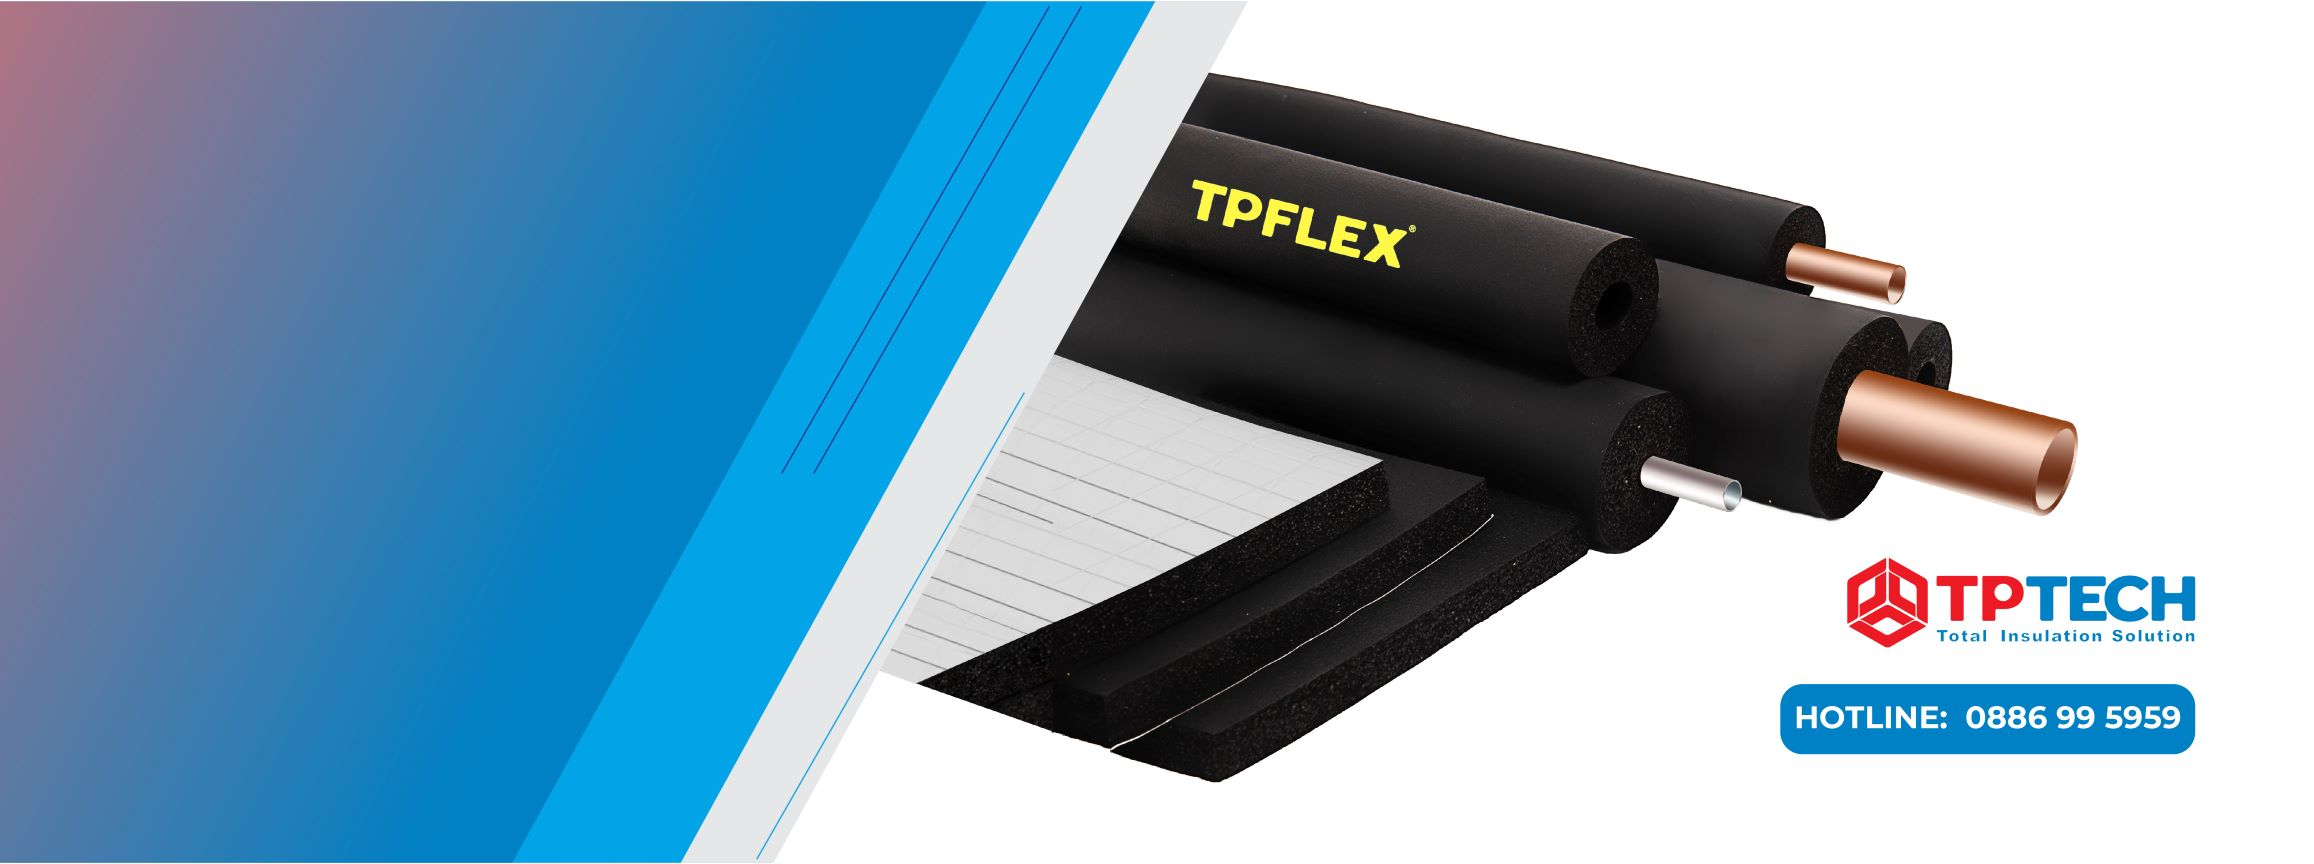 Why should you choose TPFLEX insulation ?